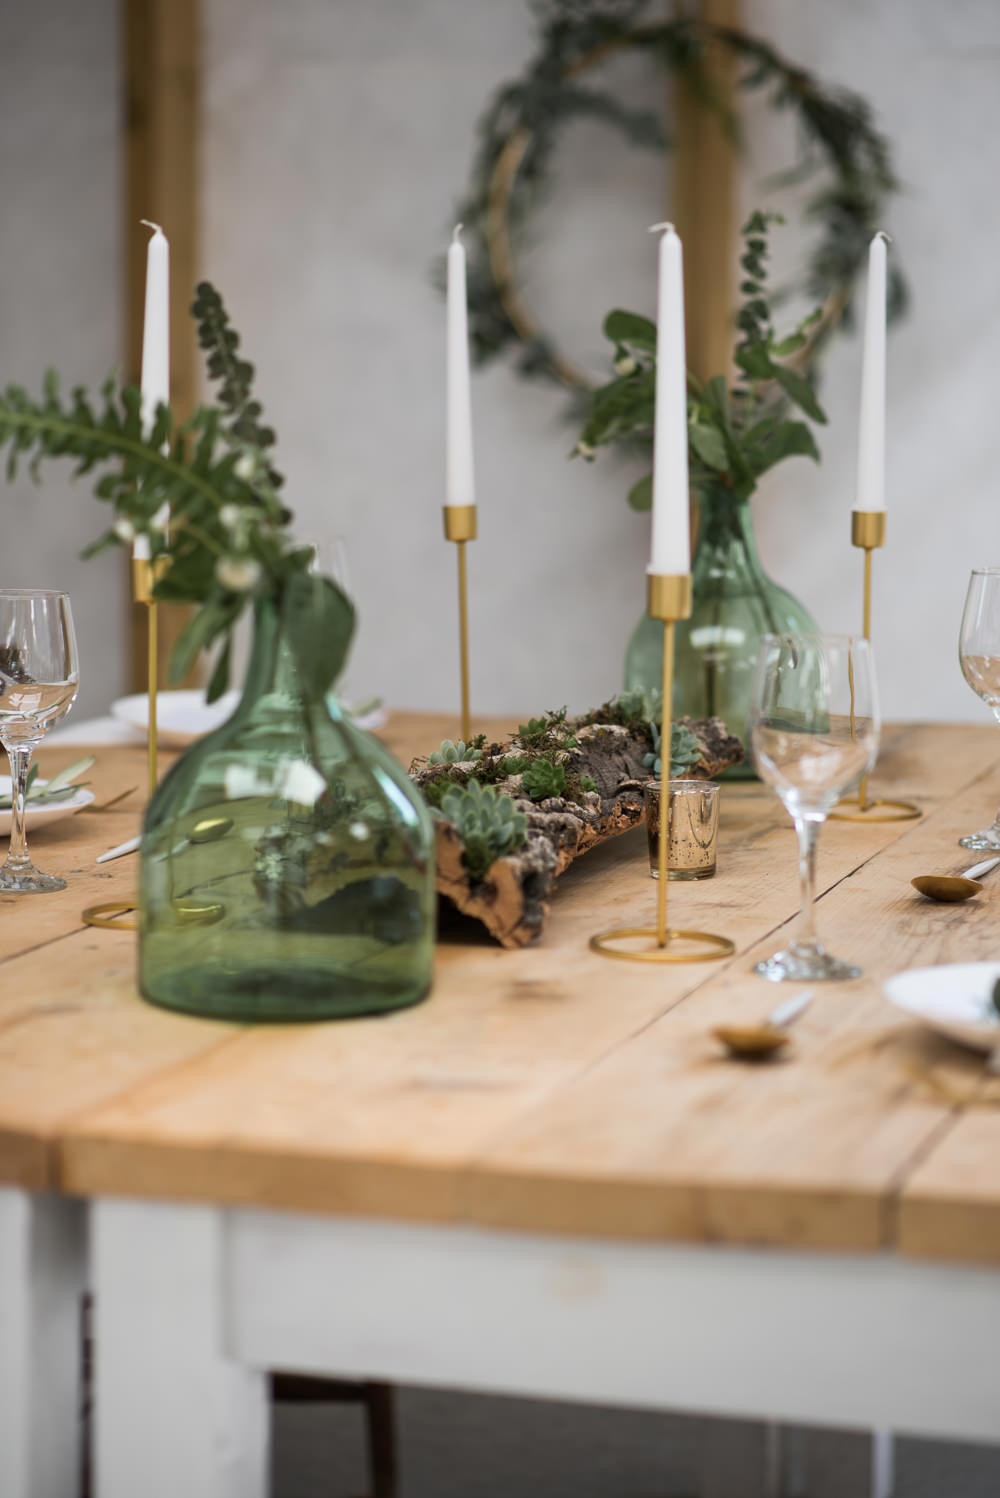 Green Bottle Vase Flowers Greenery Foliage Flowers Candes Table Tablescape Decor Decoration Minimalist Wedding Ideas Nicola Belson Photography